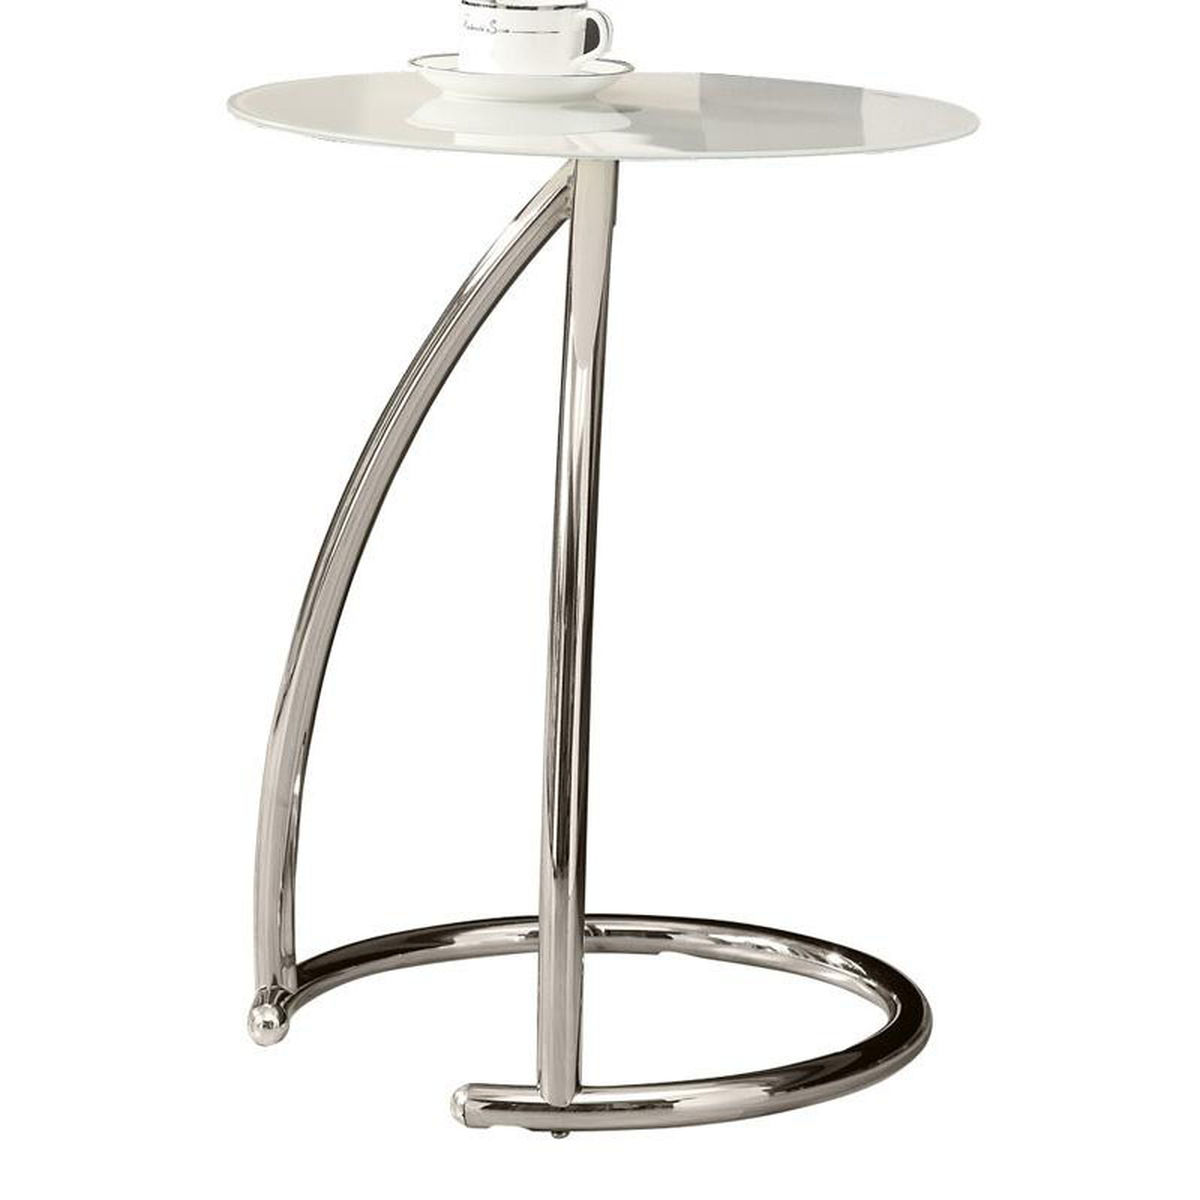 frosted glass top accent table bizchair monarch specialties msp main our curved chrome with tempered living room furniture end tables small white corner desk round metal side low